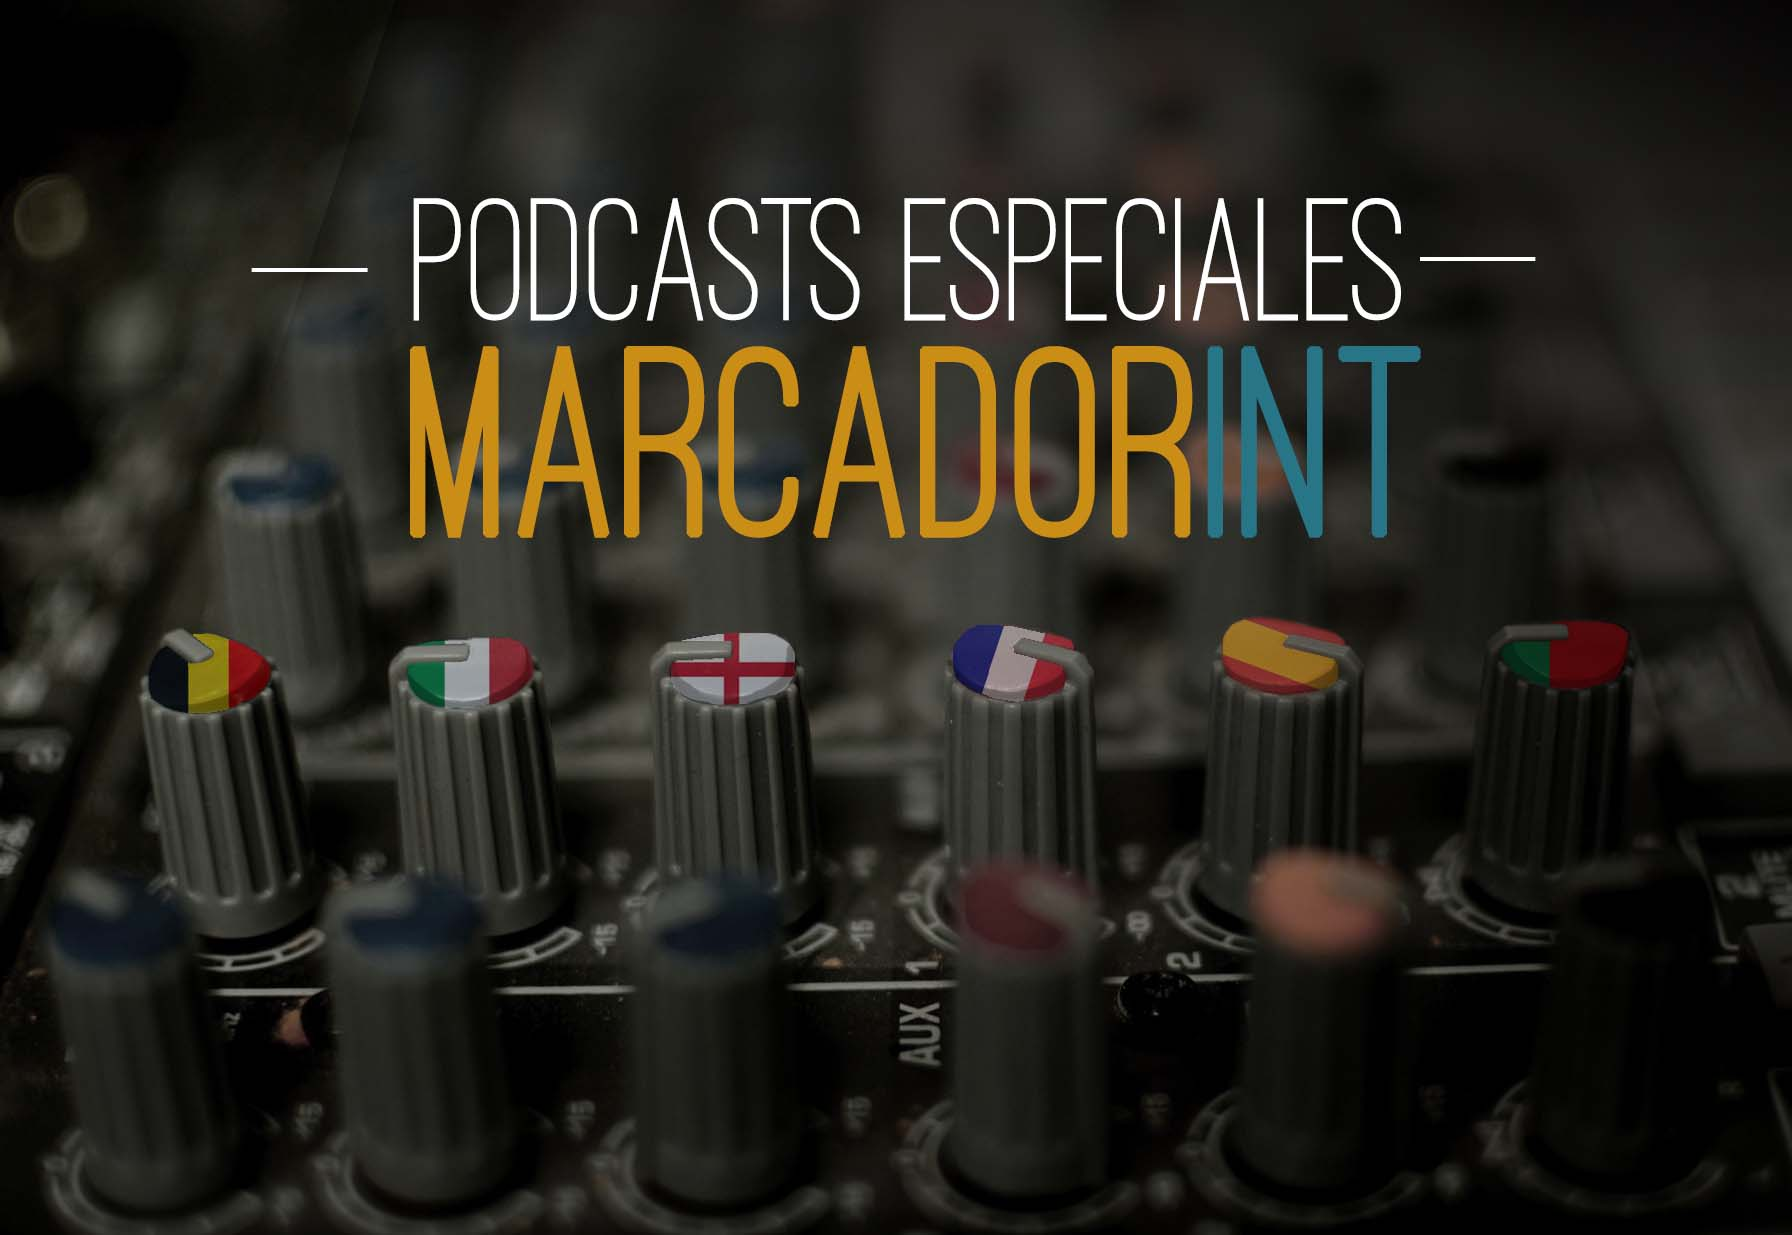 BANNER EURO PODCASTS